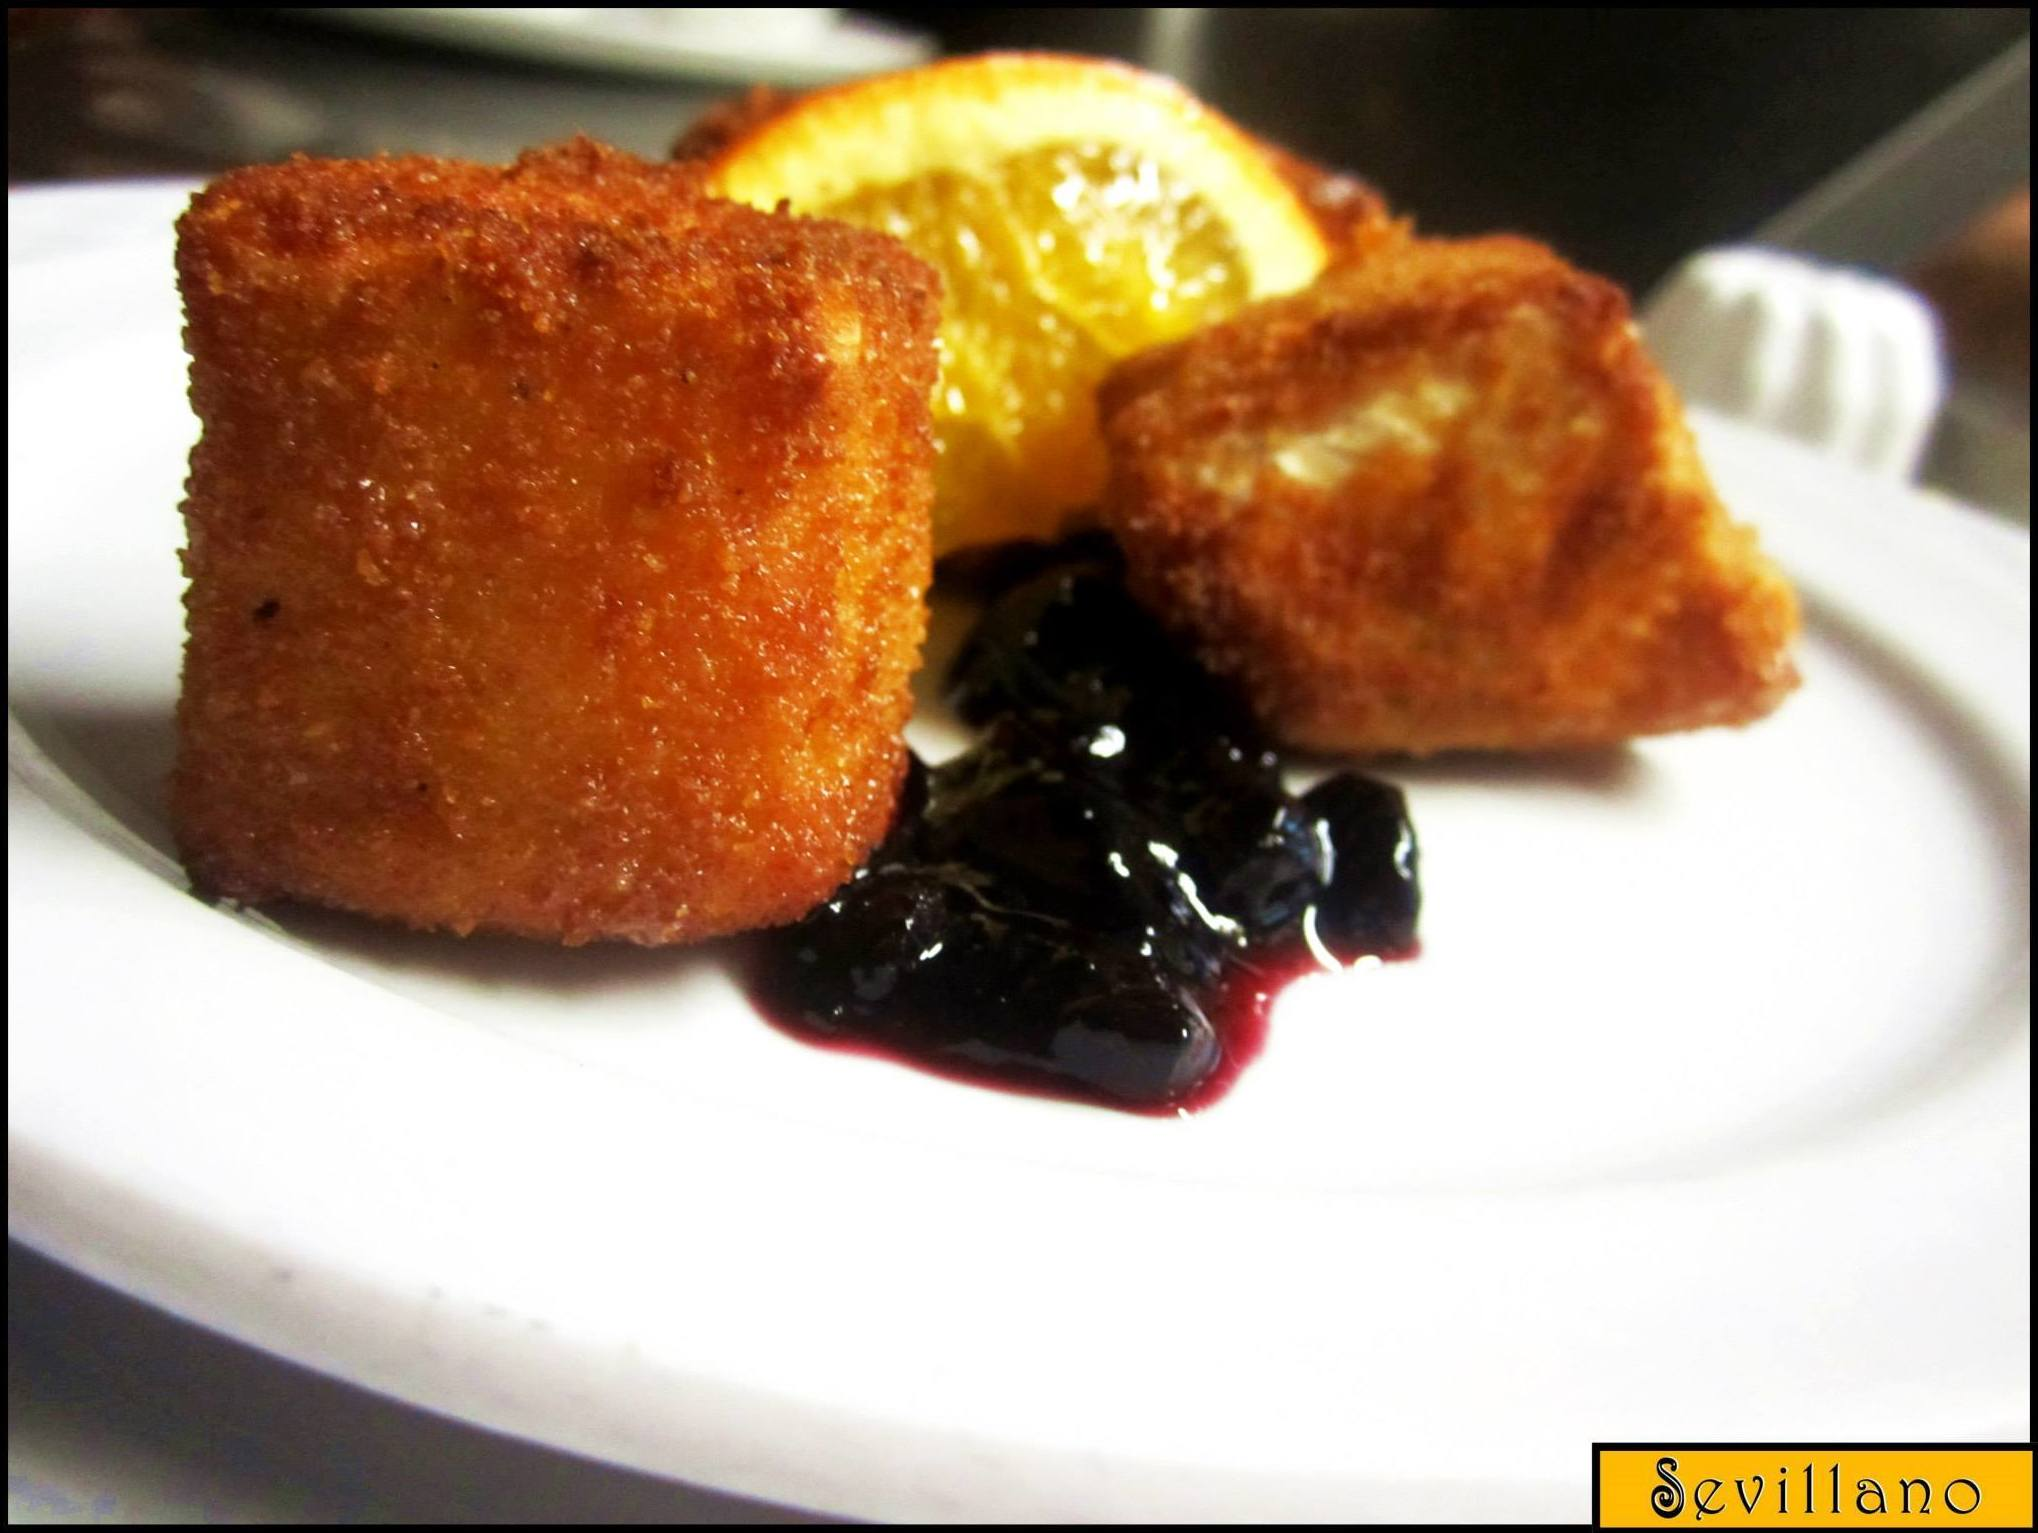 Fried camembert cheese with jam